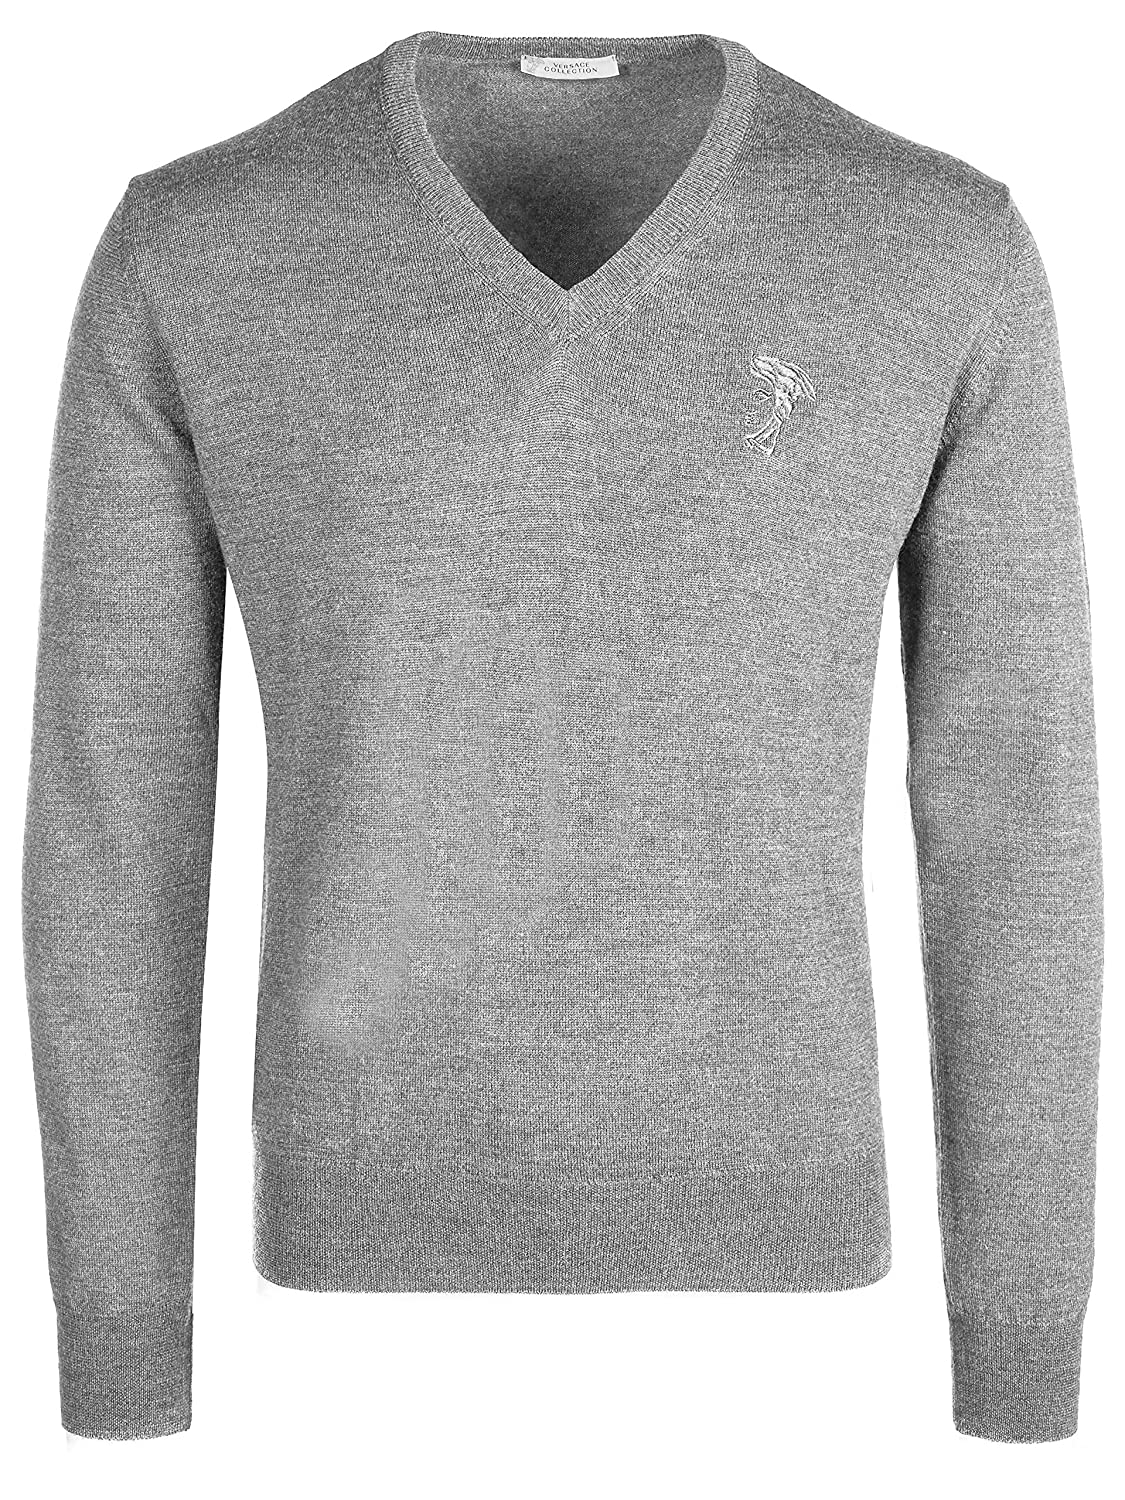 Versace Collection Light Gray V-Neck Wool Sweater